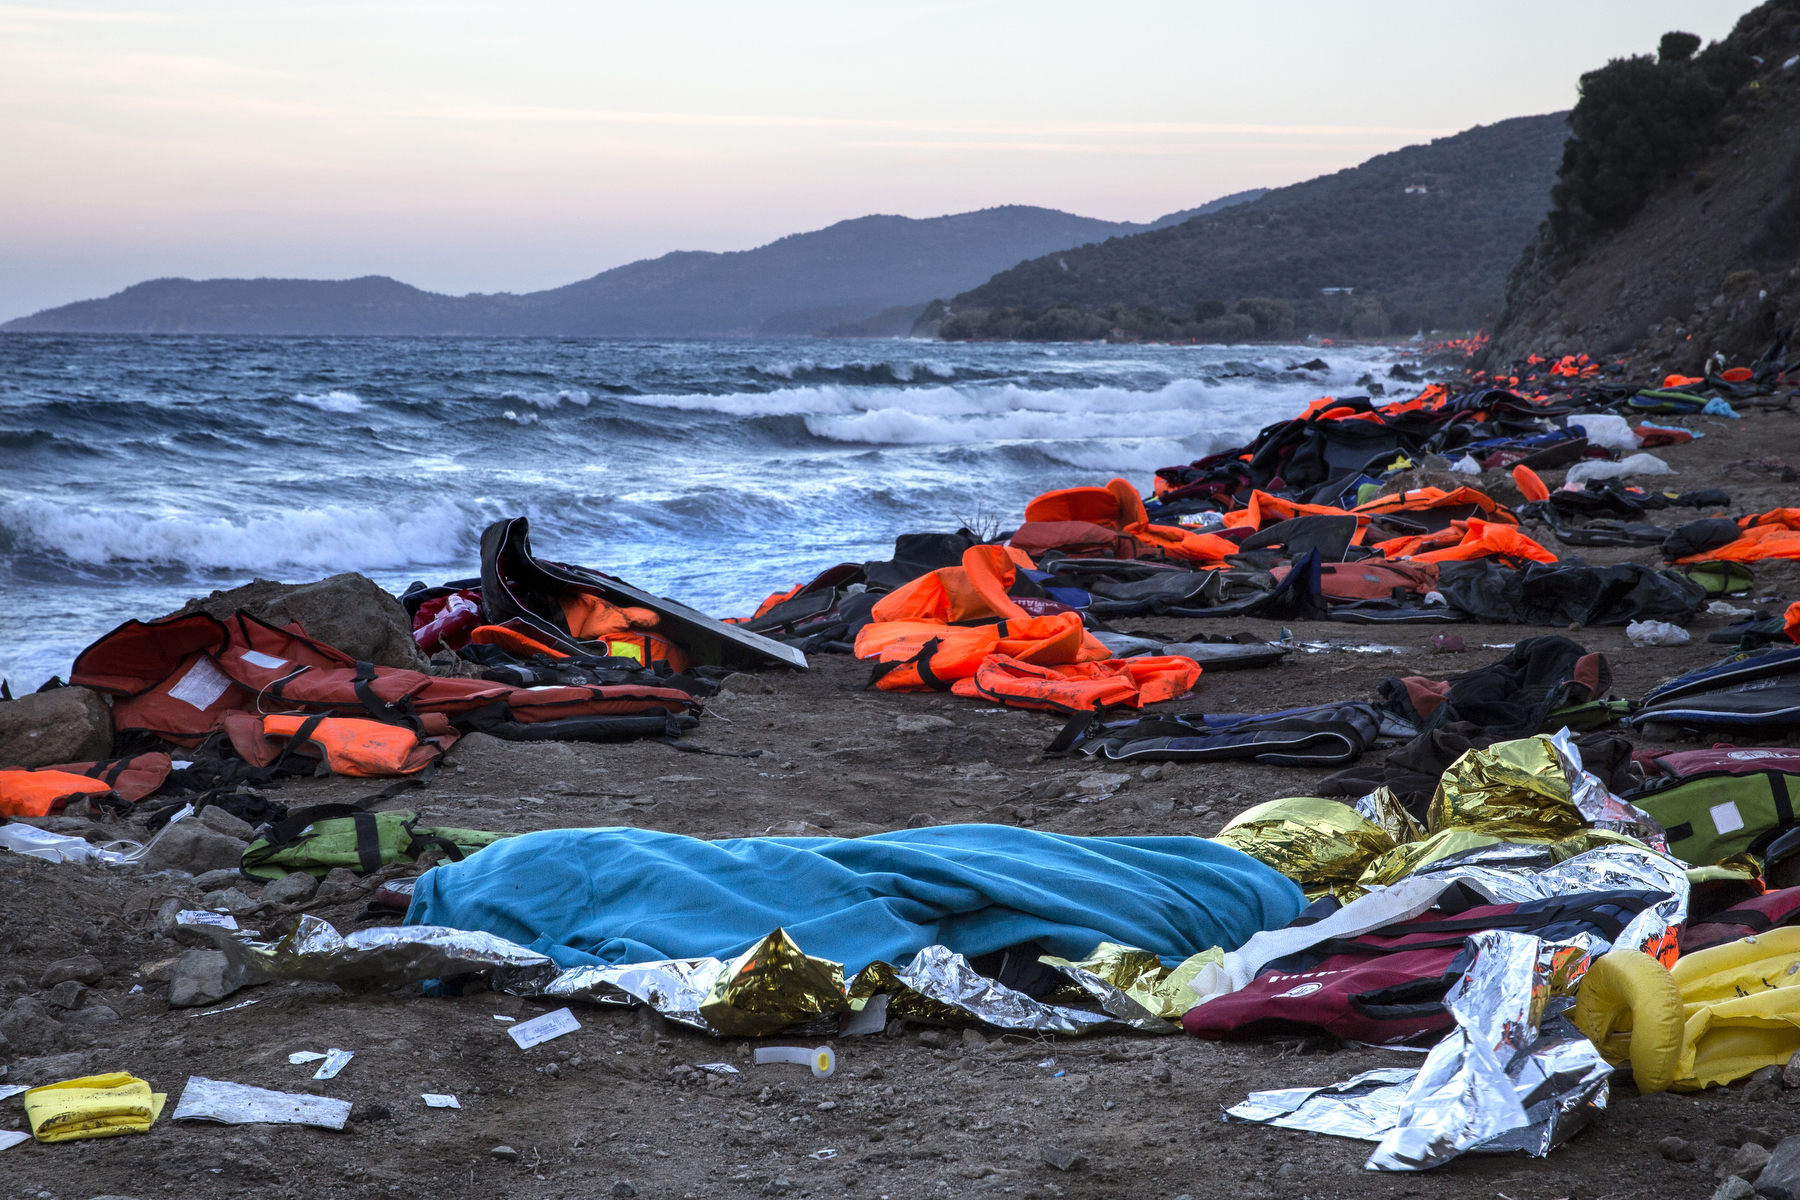 LESBOS, GREECE - OCTOBER 30: The body of a man is seen covered by a blanket after being rescued from the open waters of the Aegean sea on the island of Lesbos, Greece on October 30, 2015. The man died despite the efforts of the lifeguards and medical personnel to revive him. Dozens of rafts and boats are still making the journey daily over 590,000 people have crossed into the gateway of Europe. Nearly all of those are from the war zones of Syria, Iraq and Afghanistan. (Photo by Paula Bronstein)